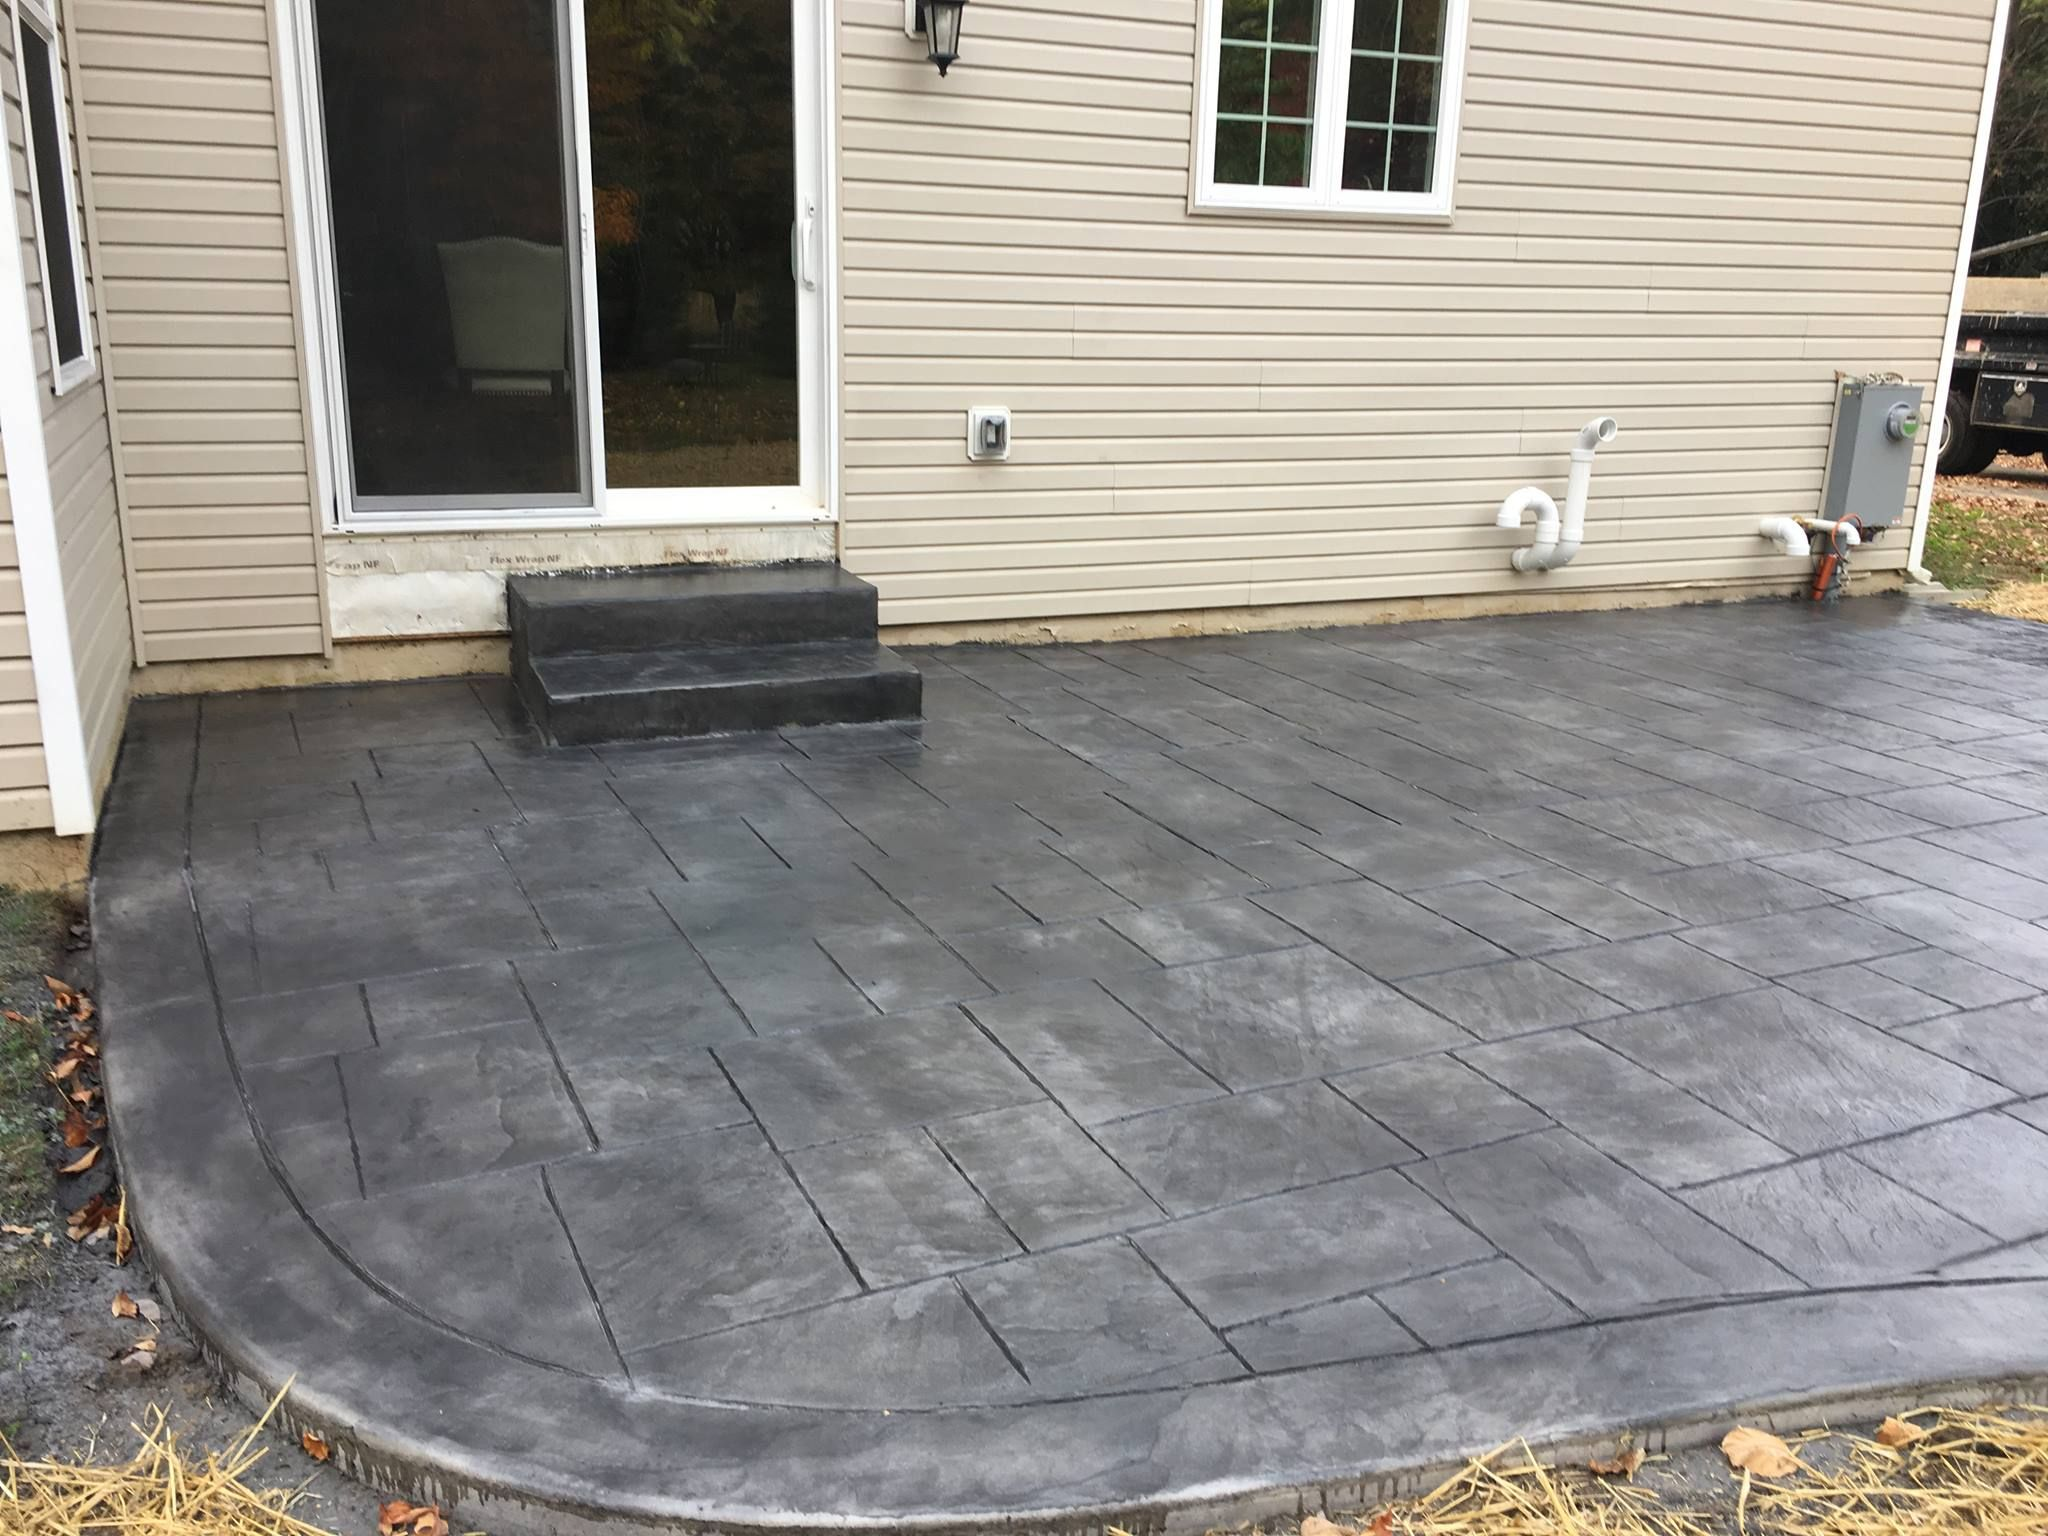 Stamped Concrete Patios Are A Great Low Maintenance Way To Add Texture To Your Yard Concrete Patio Stamped Concrete Patio Decorative Concrete Design